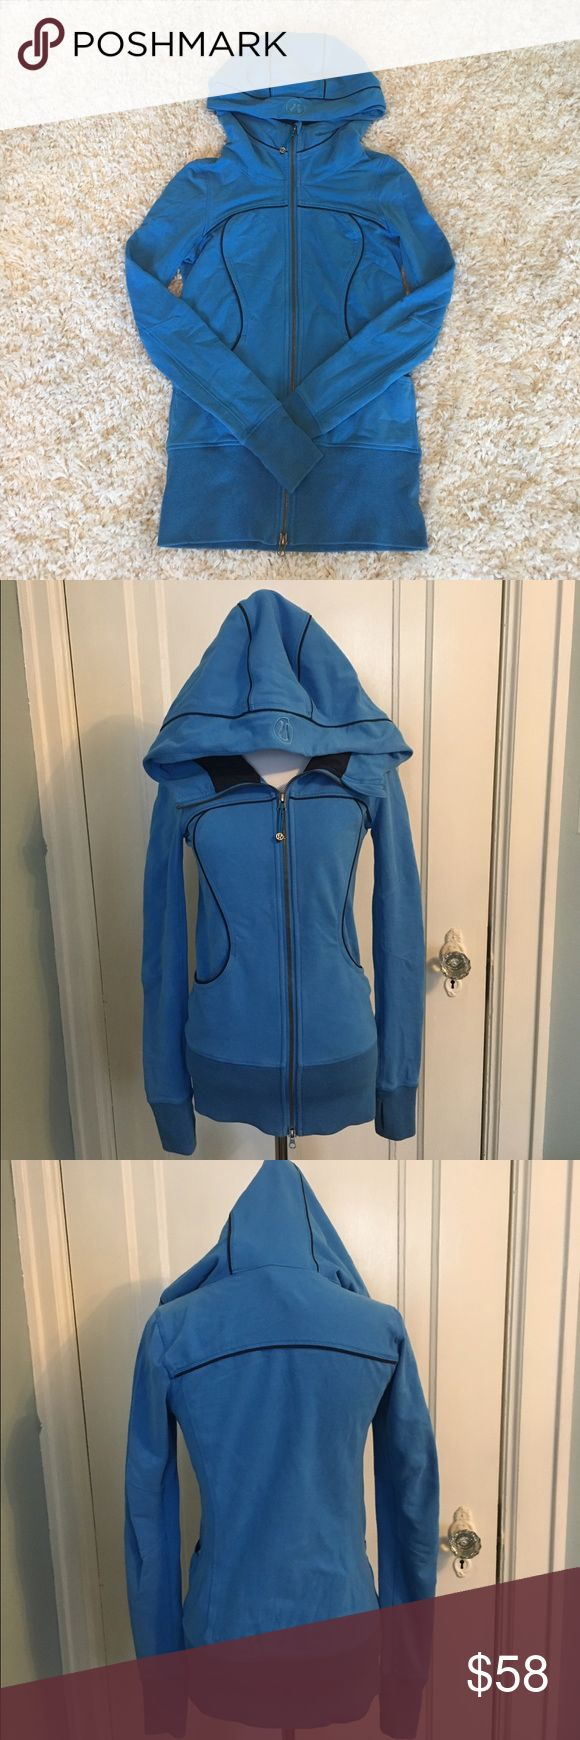 Lululemon hoodie Lululemon jacket / hoodie in excellent condition.  Not sure of the exact name.  Longer than a regular Scuba.  Comes from a smoke free home! lululemon athletica Tops Sweatshirts & Hoodies